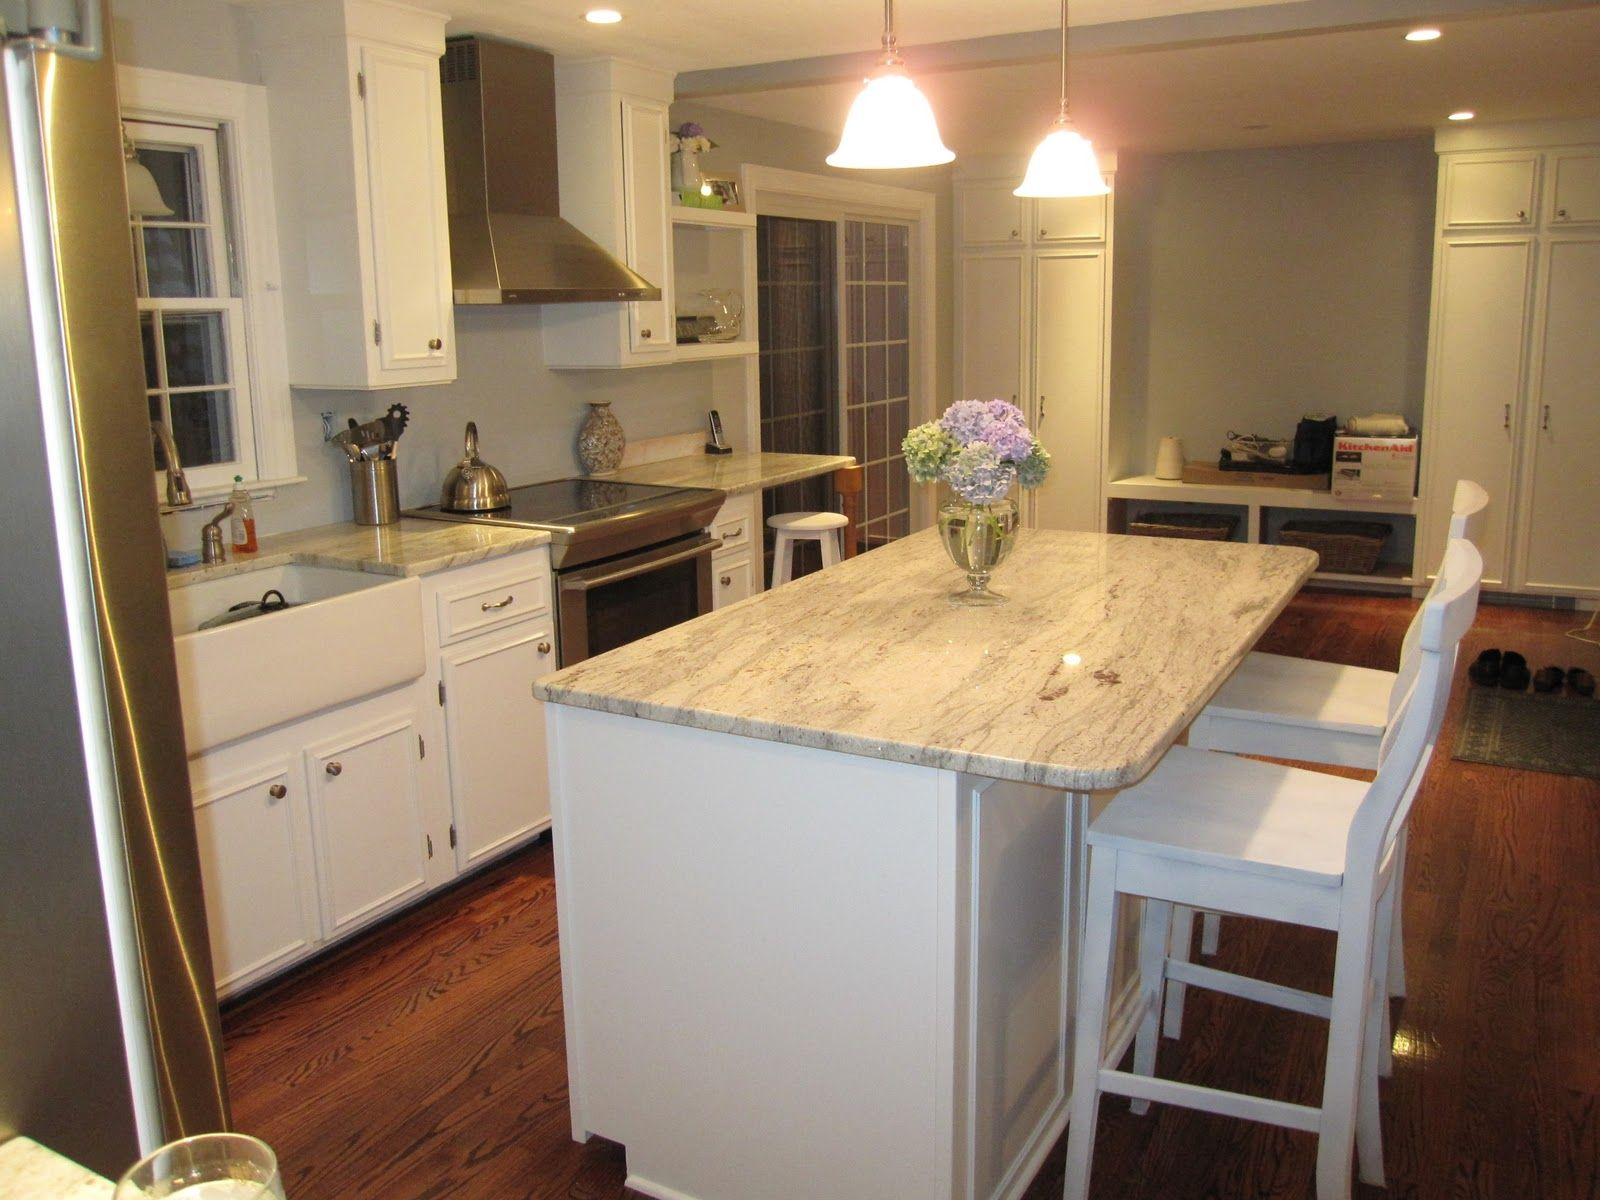 White cabinets with granite countertops diy kitchen for Small kitchen granite countertops